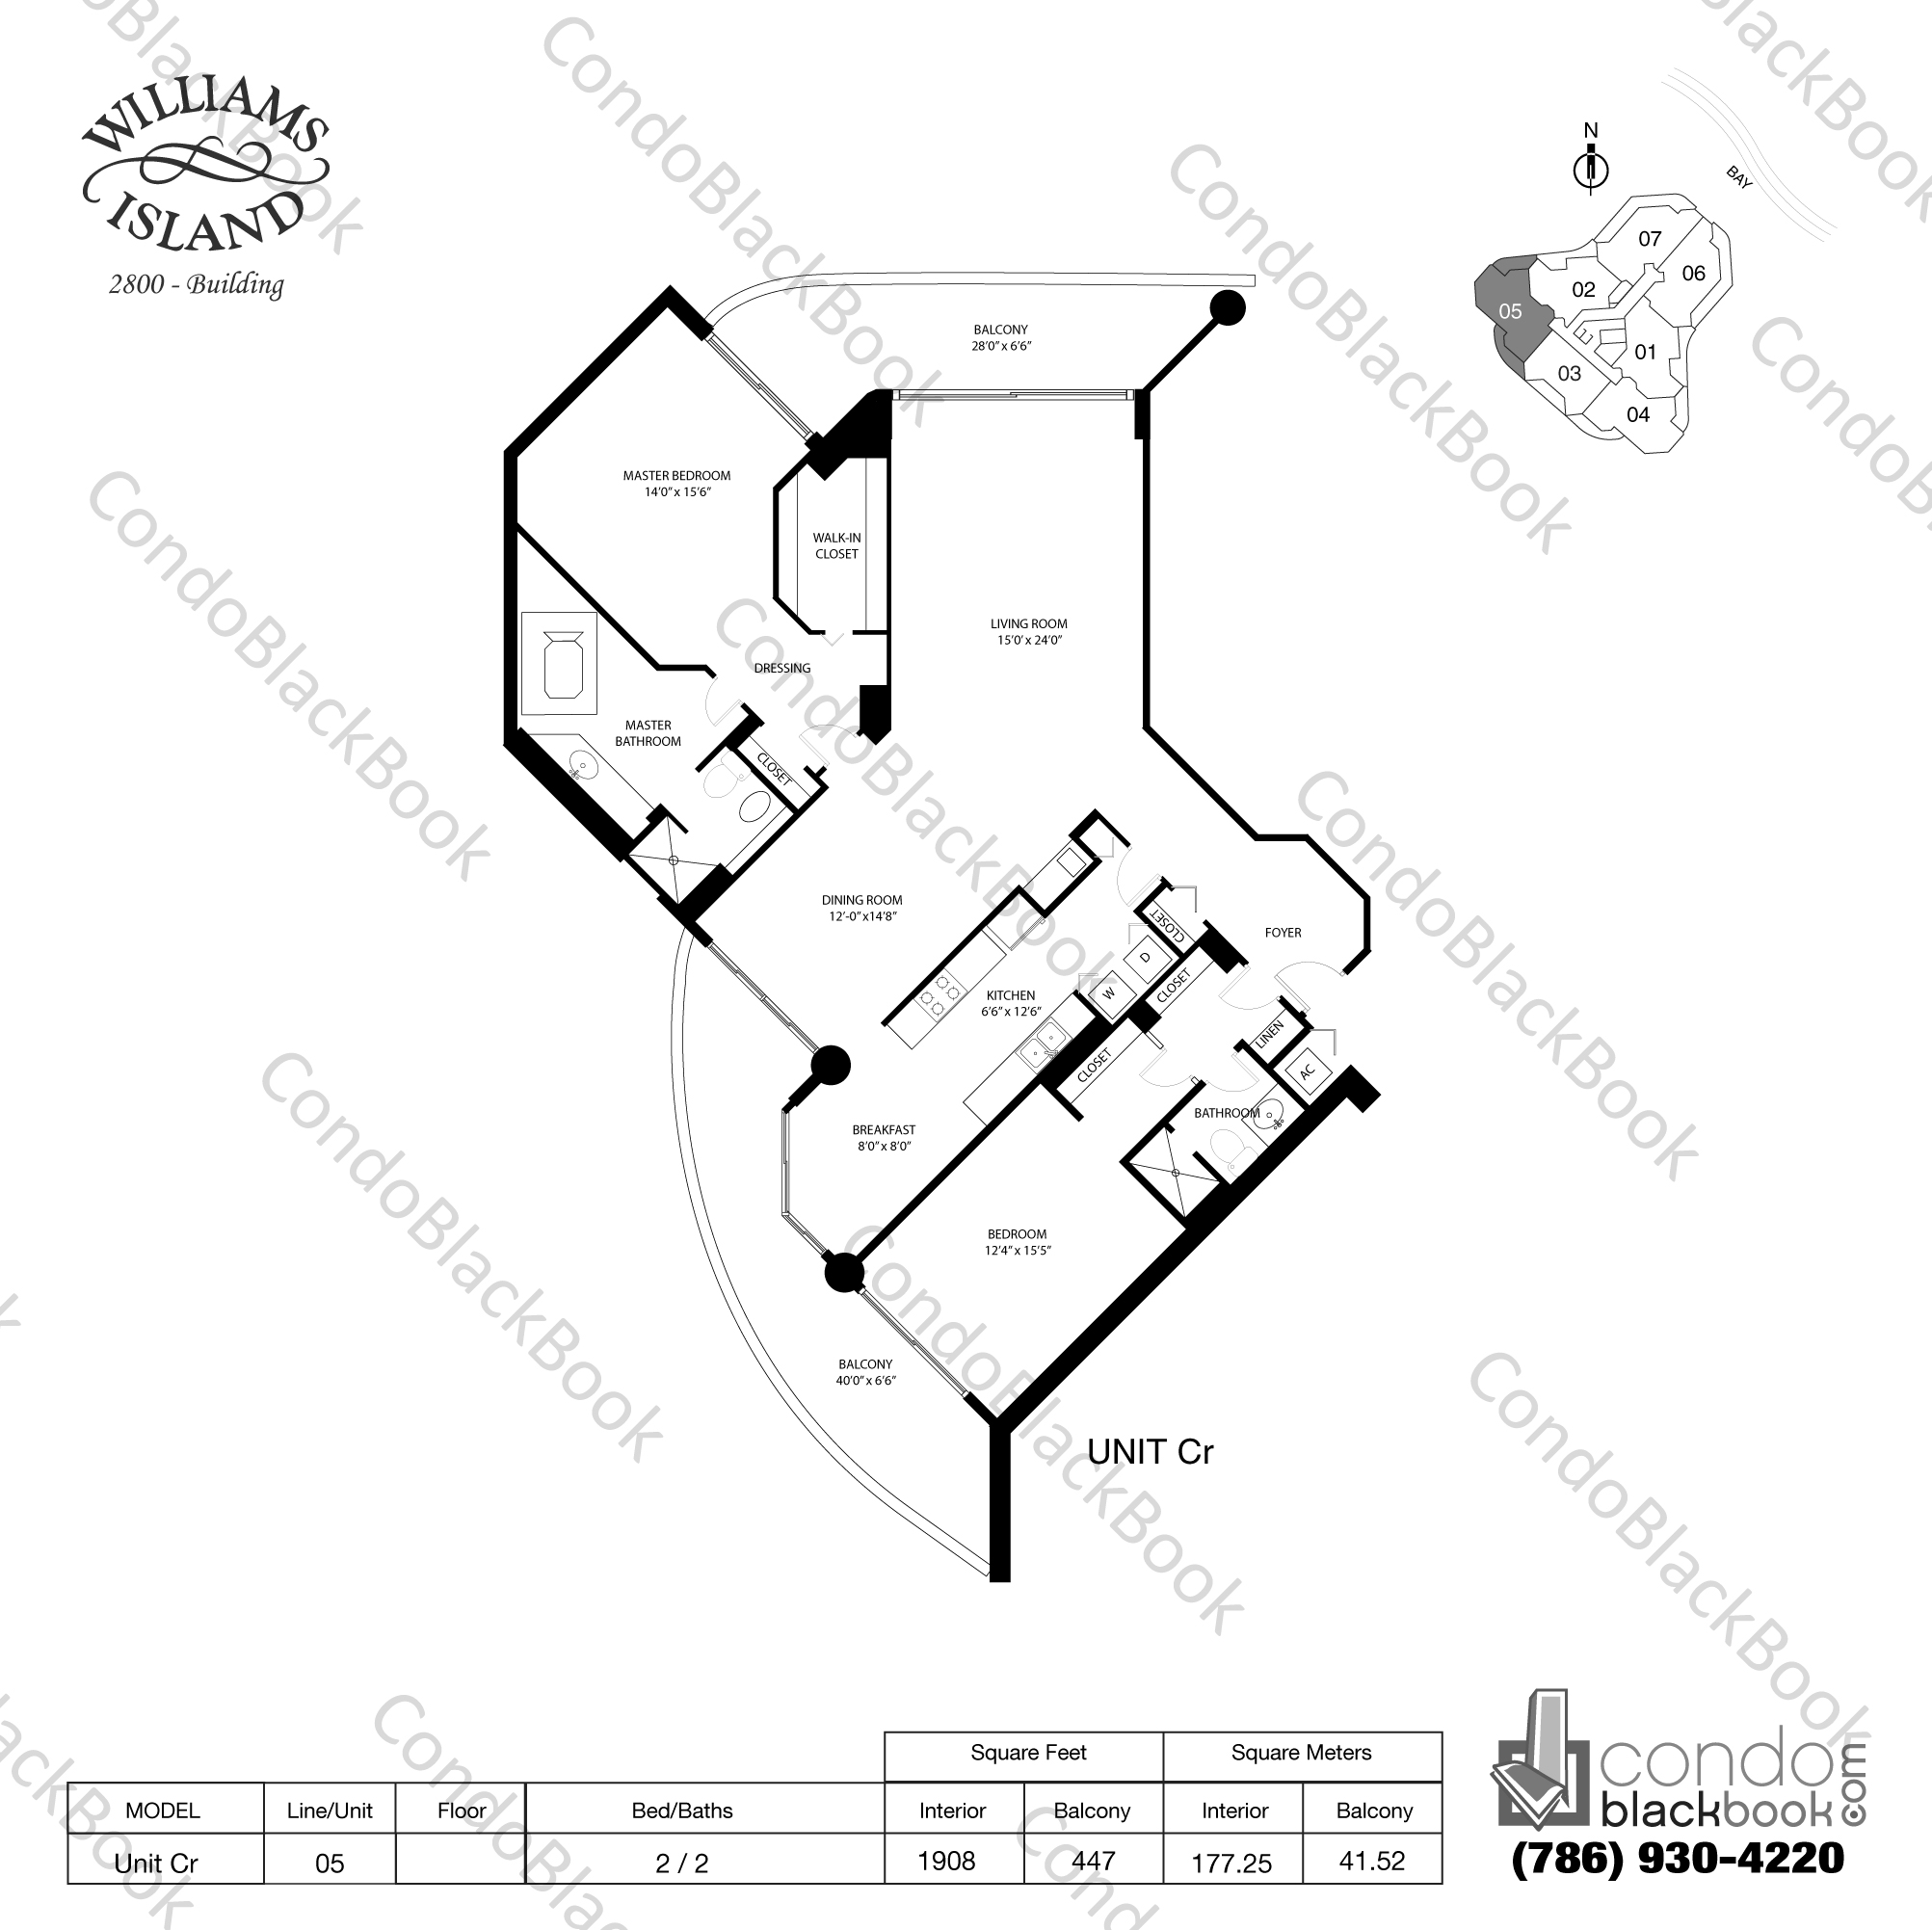 Floor plan for Williams Island 2800 Aventura, model Unit Cr, line 05, 2 / 2 bedrooms, 1908 sq ft